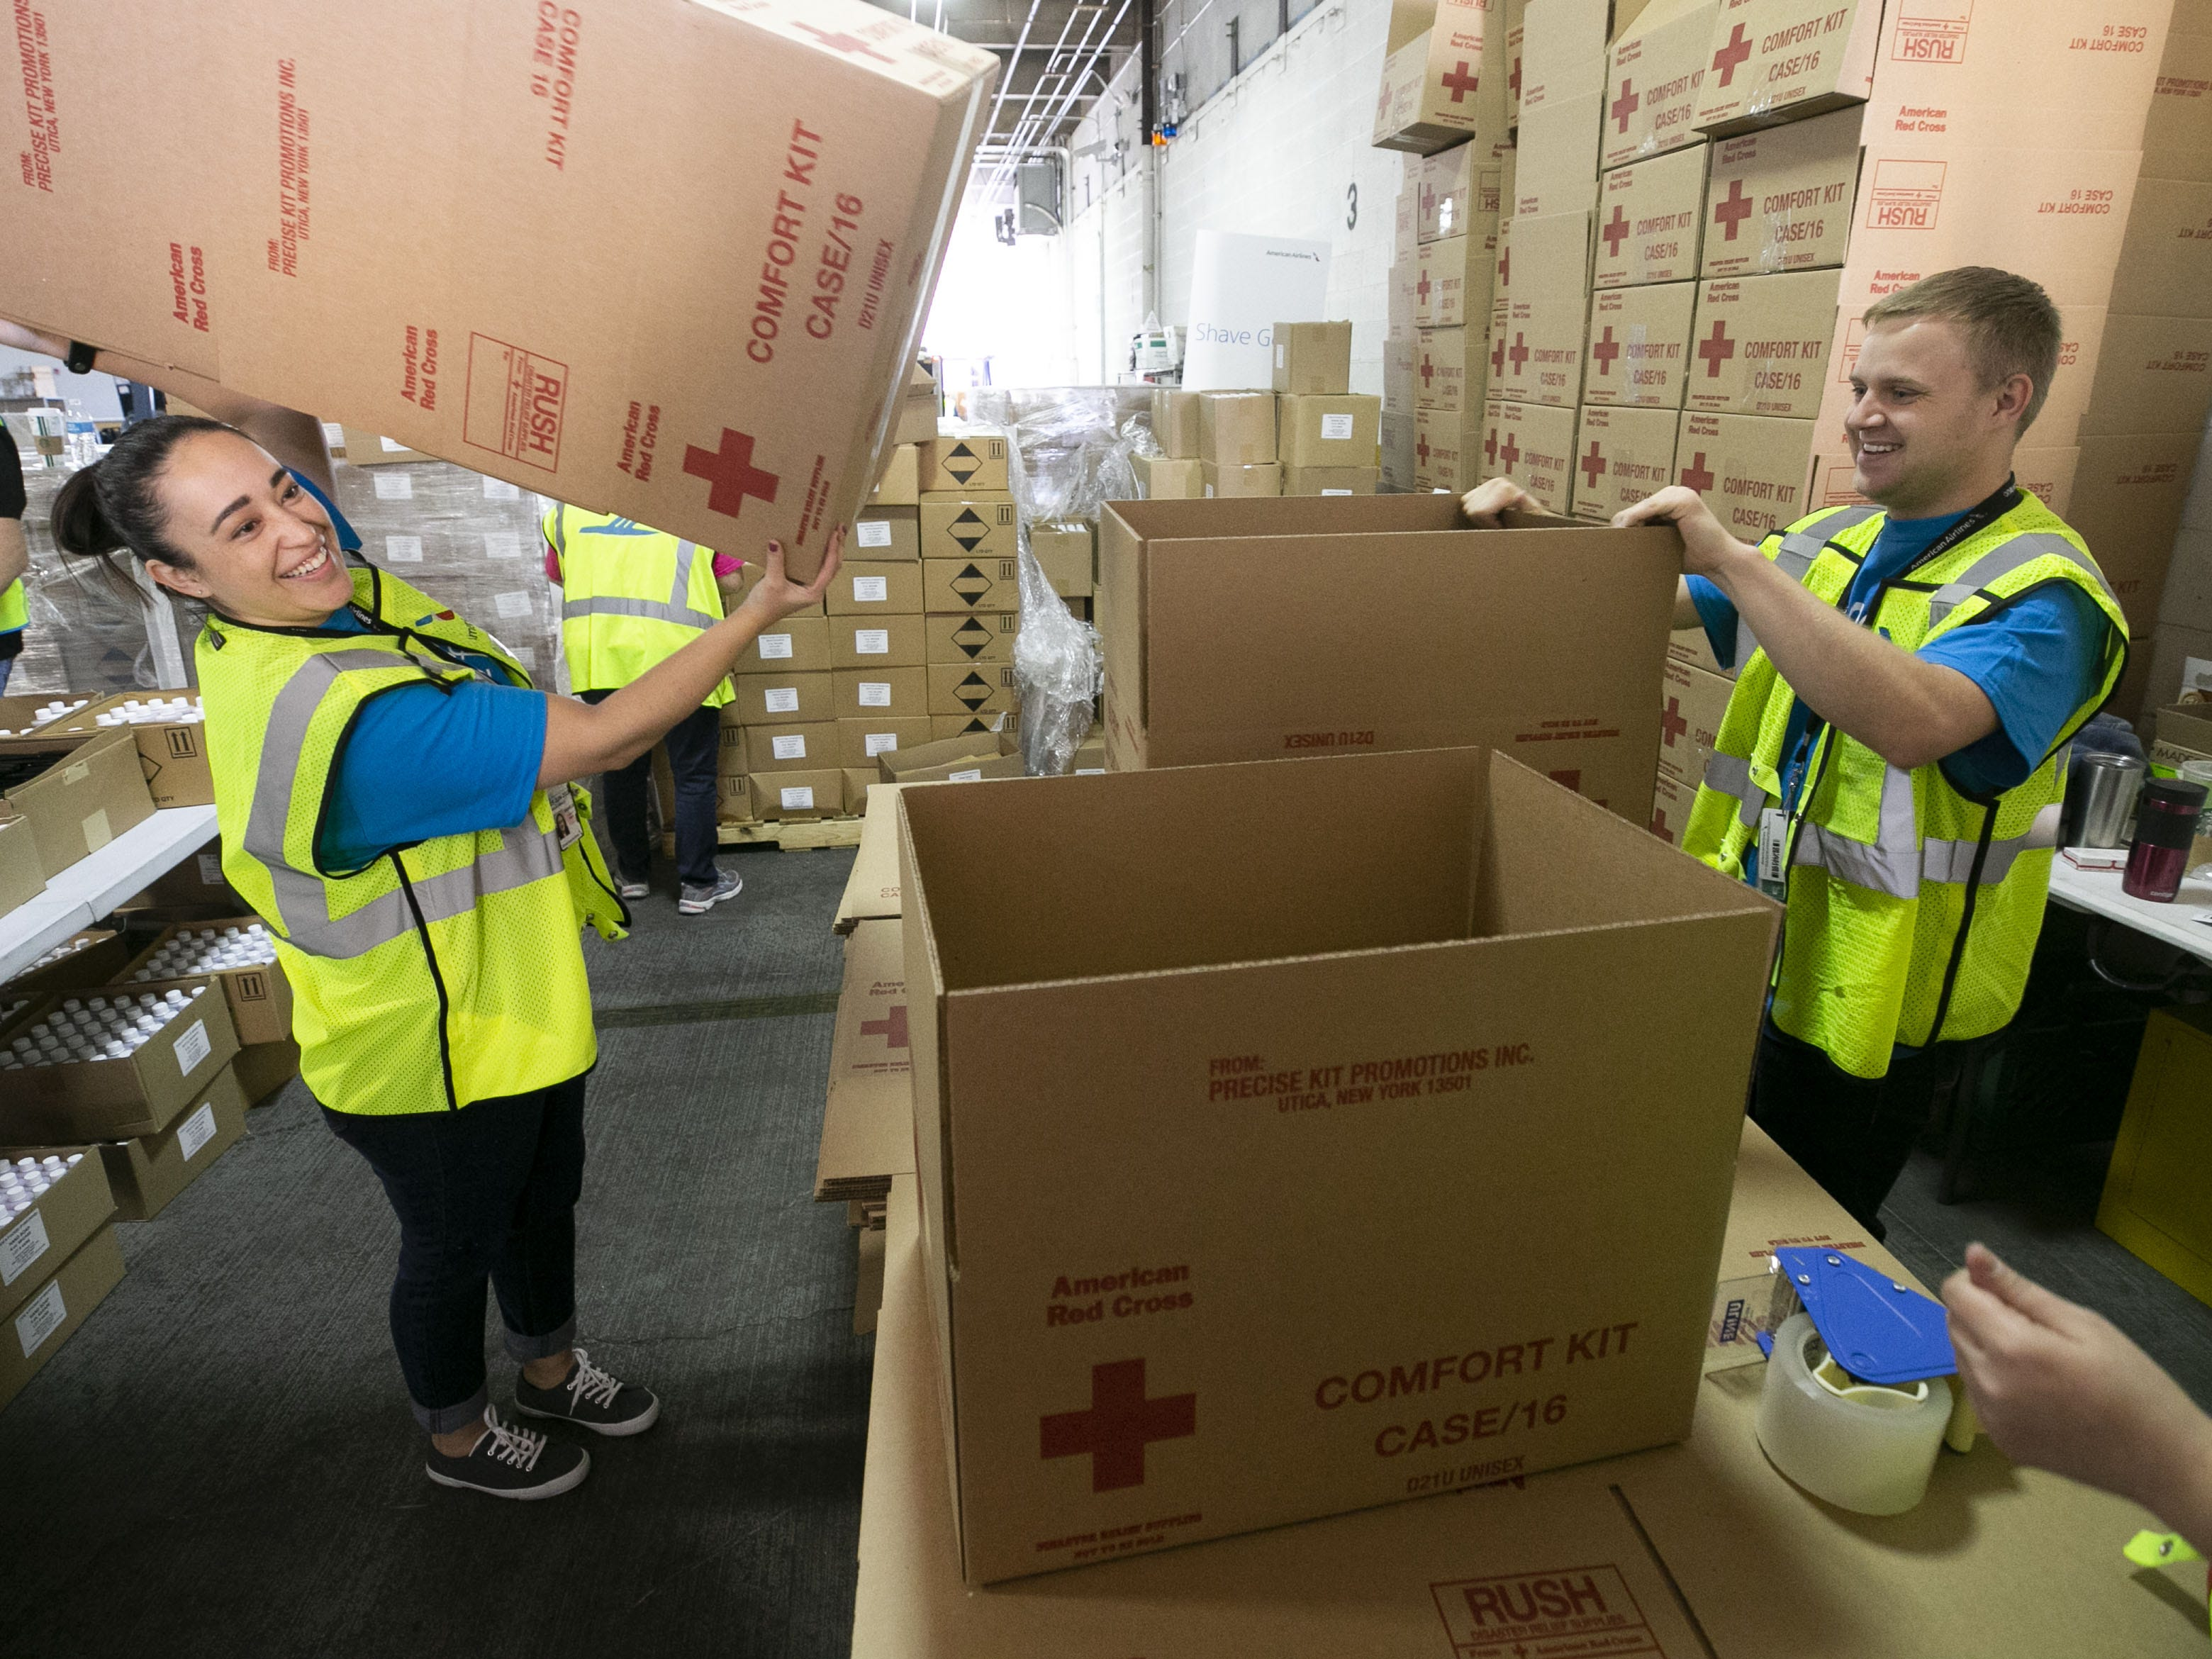 American Airlines employees Danielle Padilla (left) and Caleb Stevens fold boxes for amenity kits for the victims of the California wildfires, at the American Airlines cargo facility in Phoenix on Tuesday, Nov. 27, 2018.